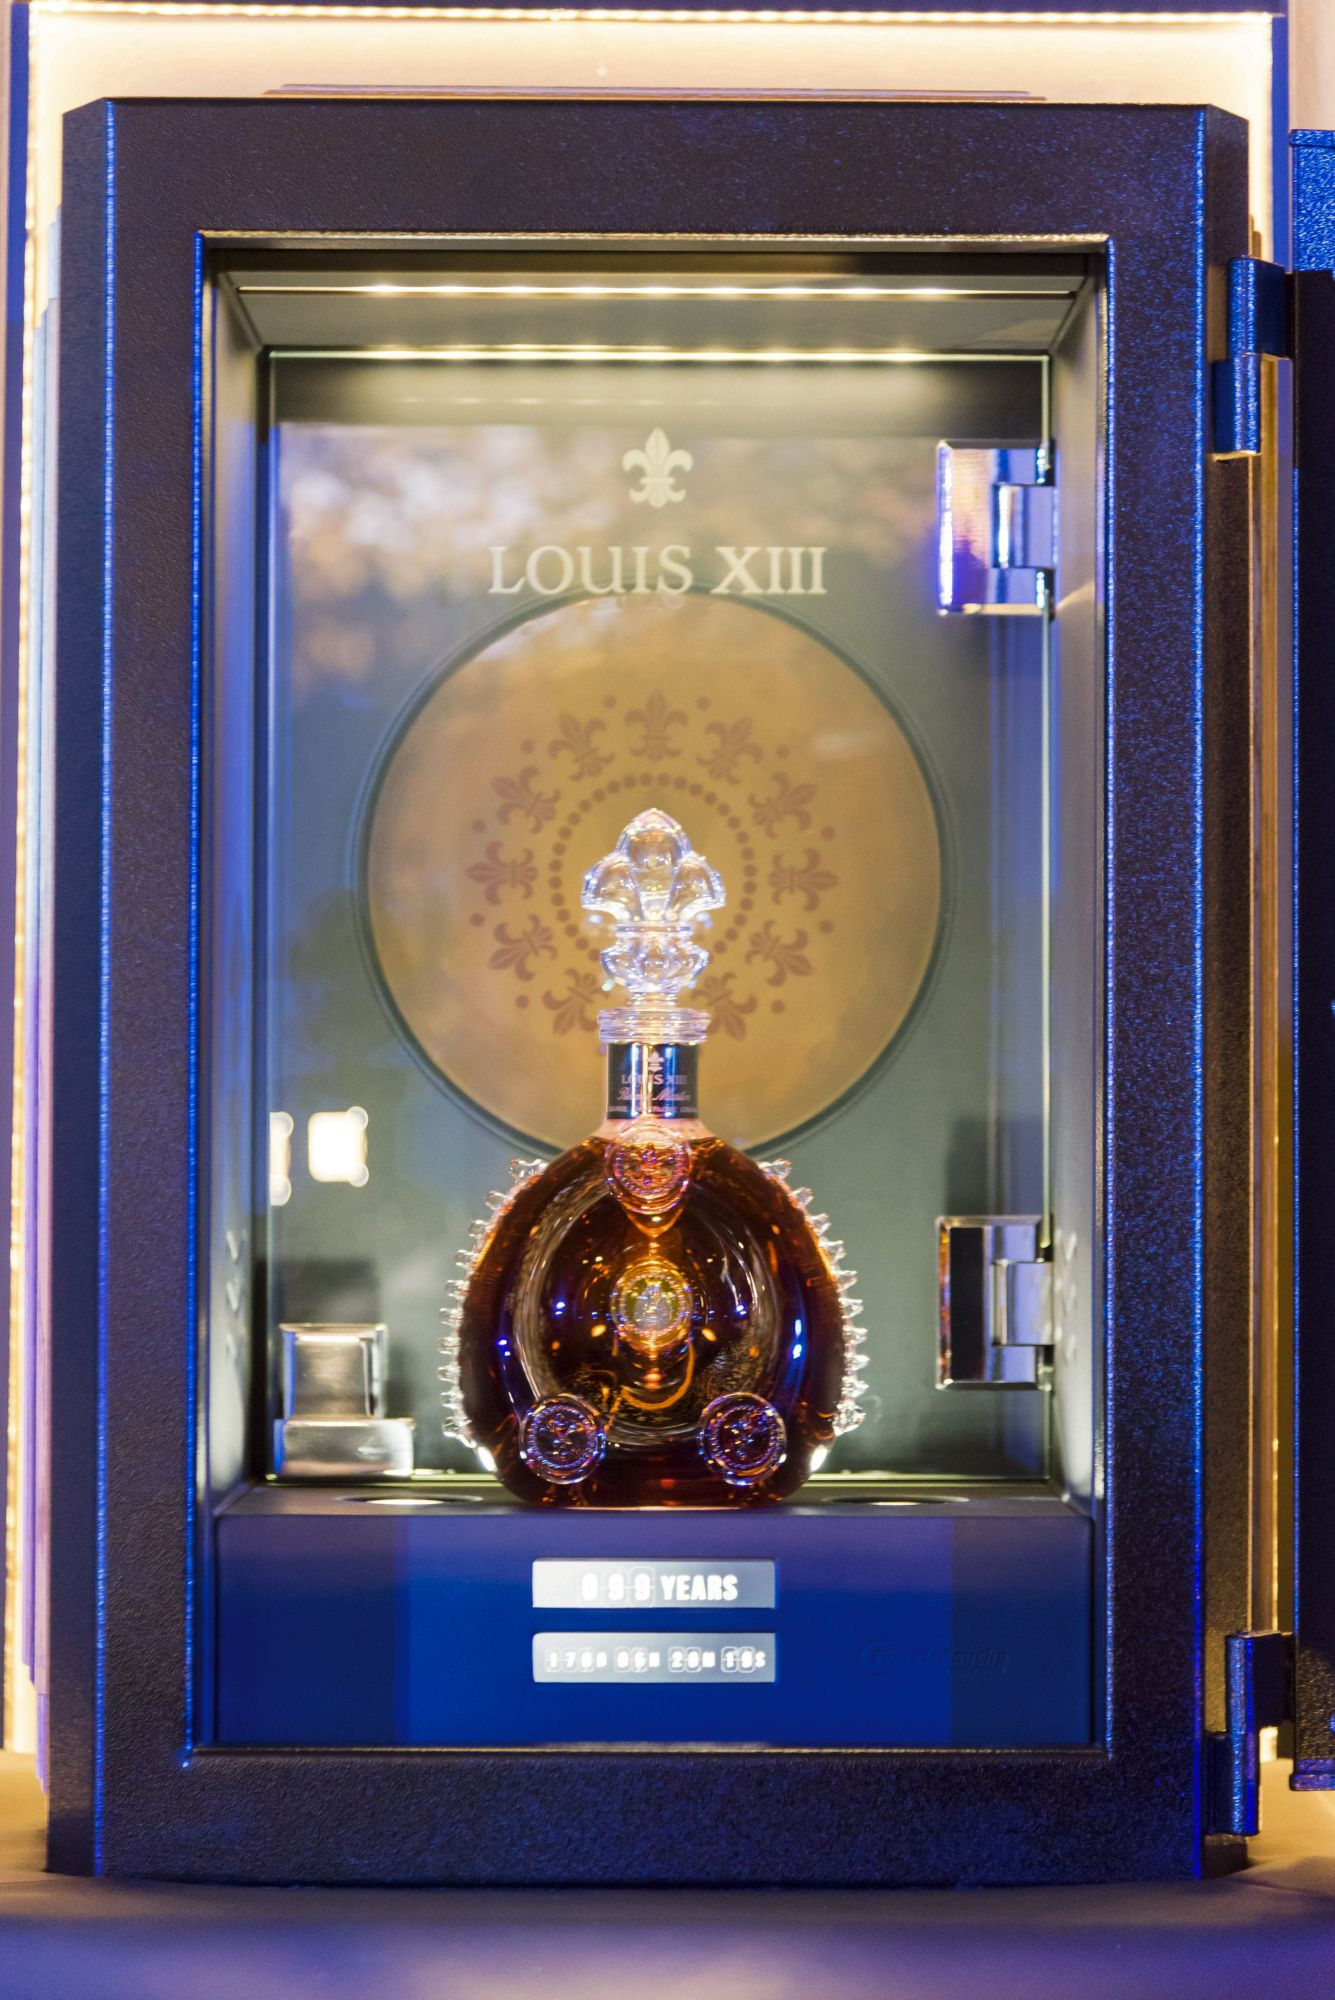 The one-of-a-kind clay record of Pharrell William's 100 Years - The Song We'll Only Hear If We Care for Louis XIII, which will only premiere in 2117